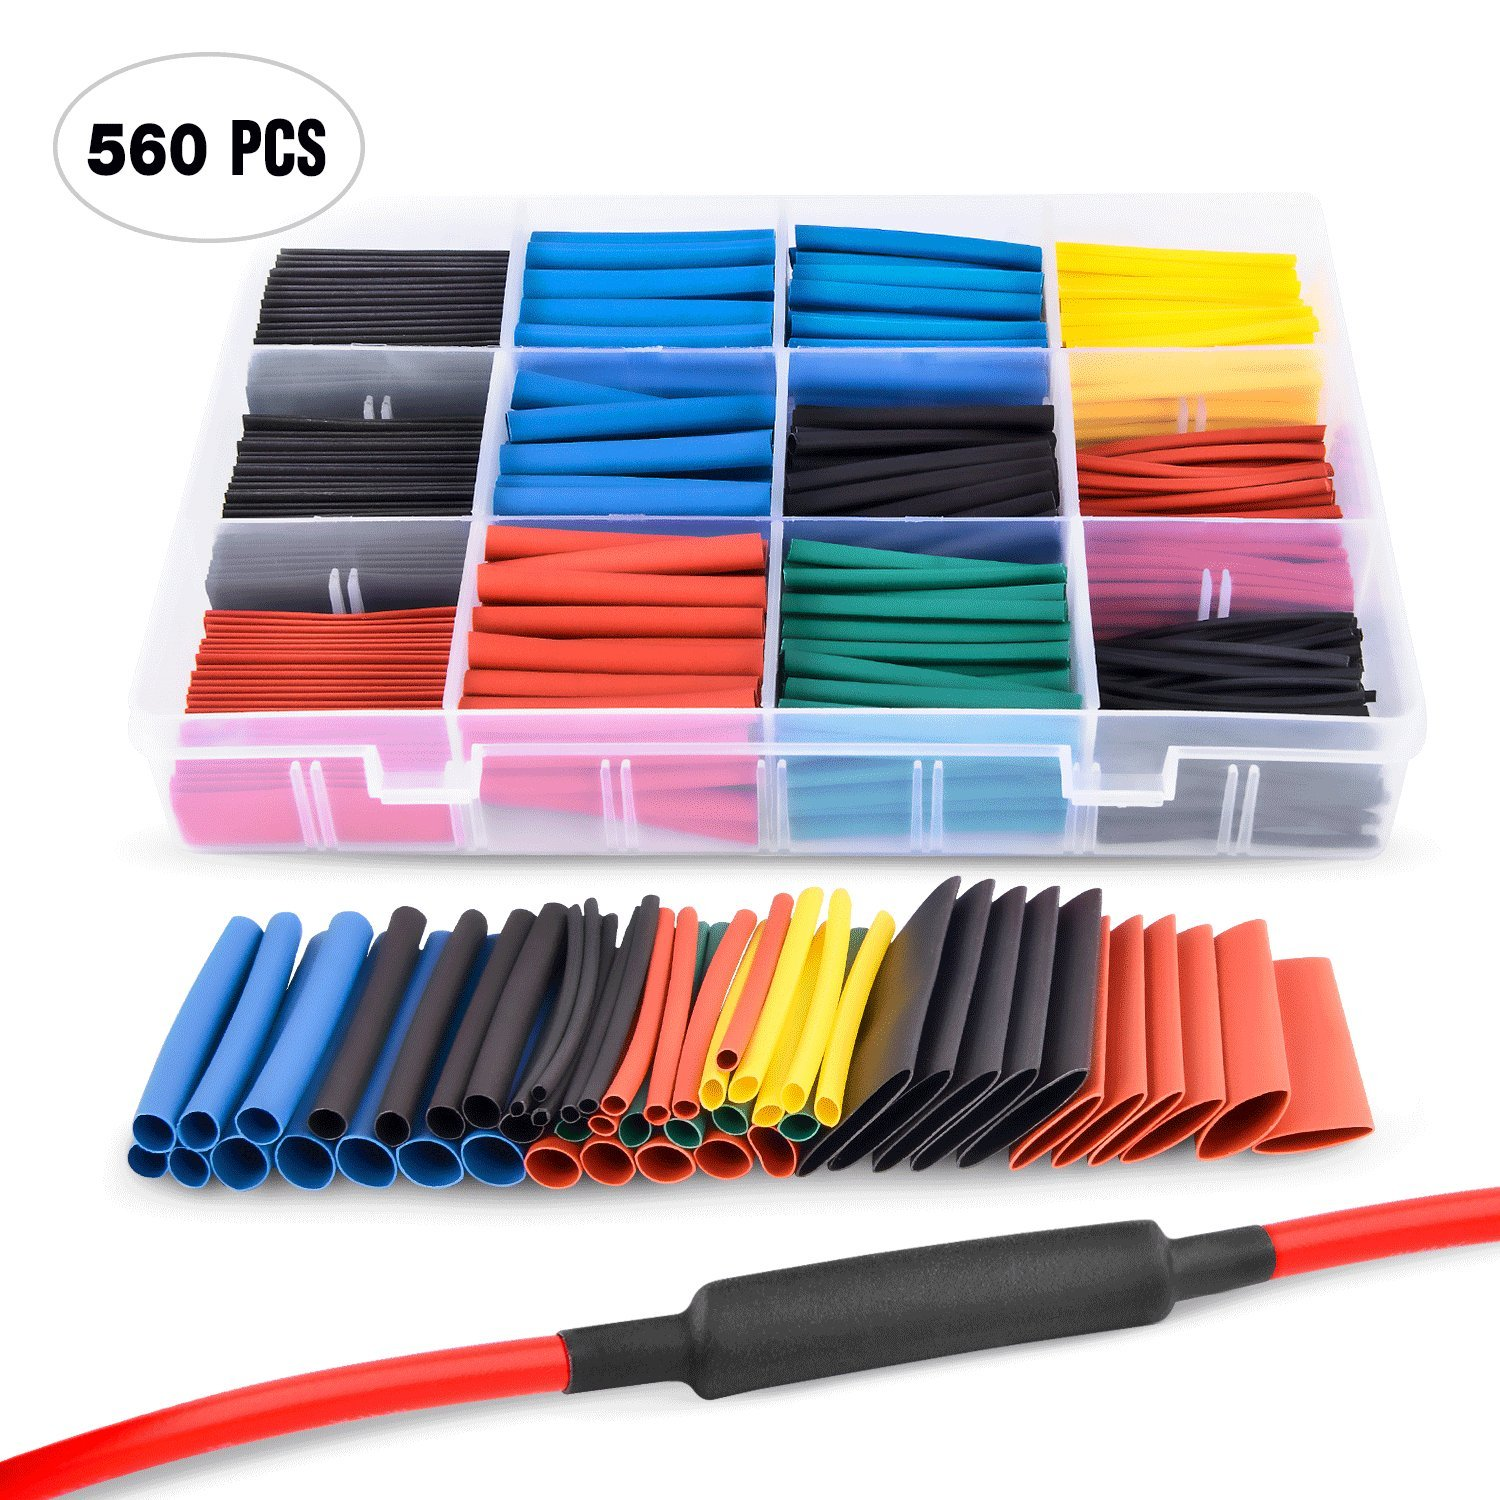 Nilight 50005R Heat Shrink 2:1 Electric Insulation Tube Kit 45mm Flame Retardant Wrap Cable Sleeve 560pcs 5 Colors 12 Sizes with Storage Box,2 Years Warranty